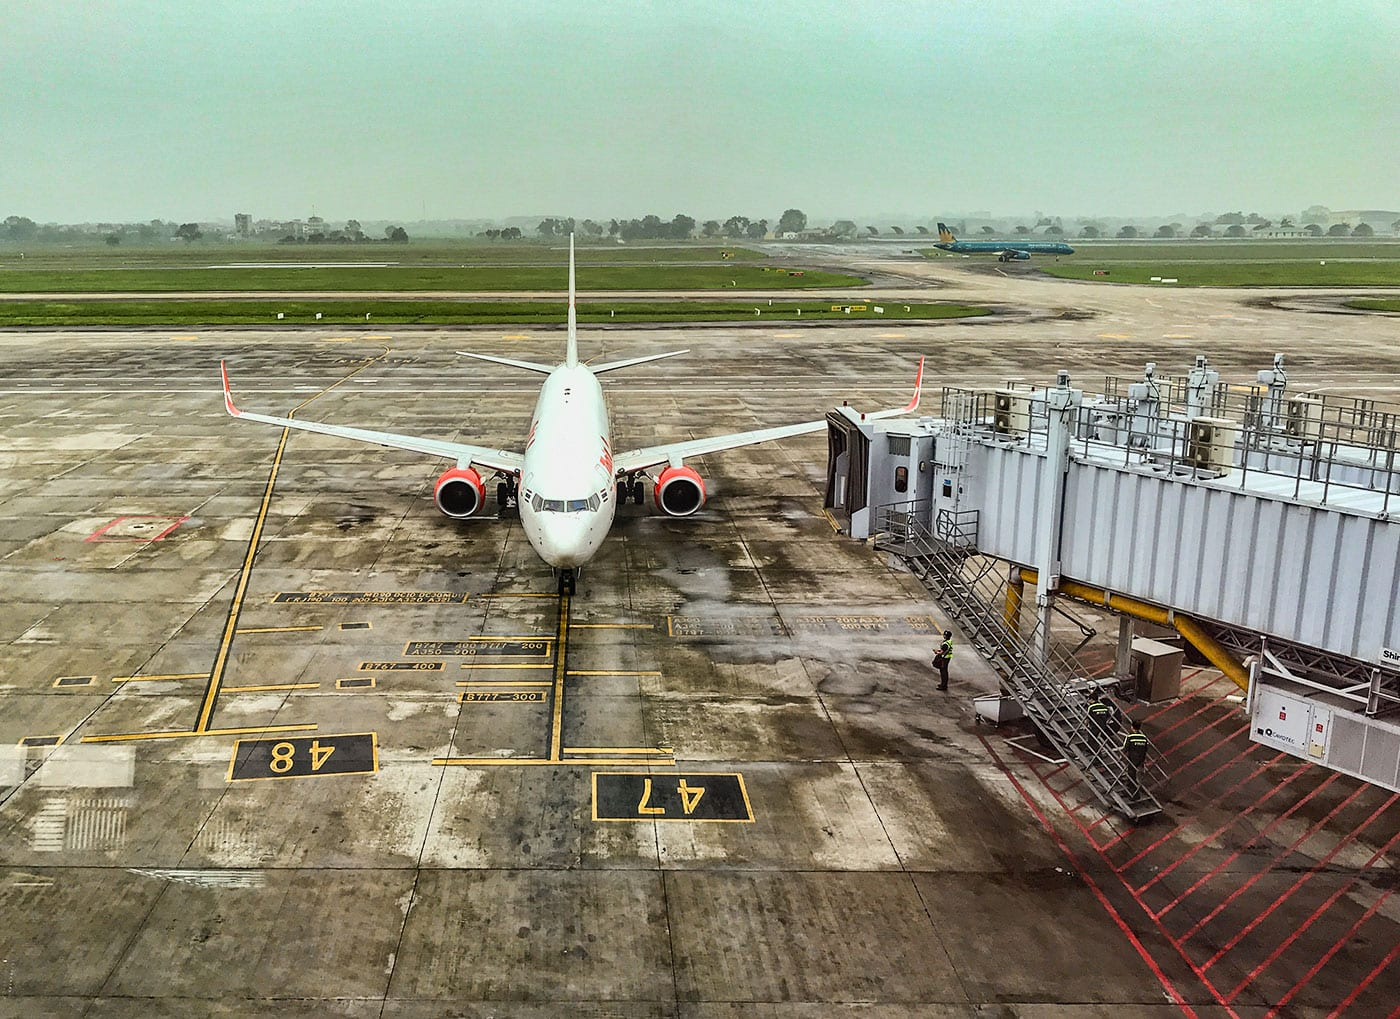 Winter 17/18 – From Pom Coong over Hanoi to Bangkok